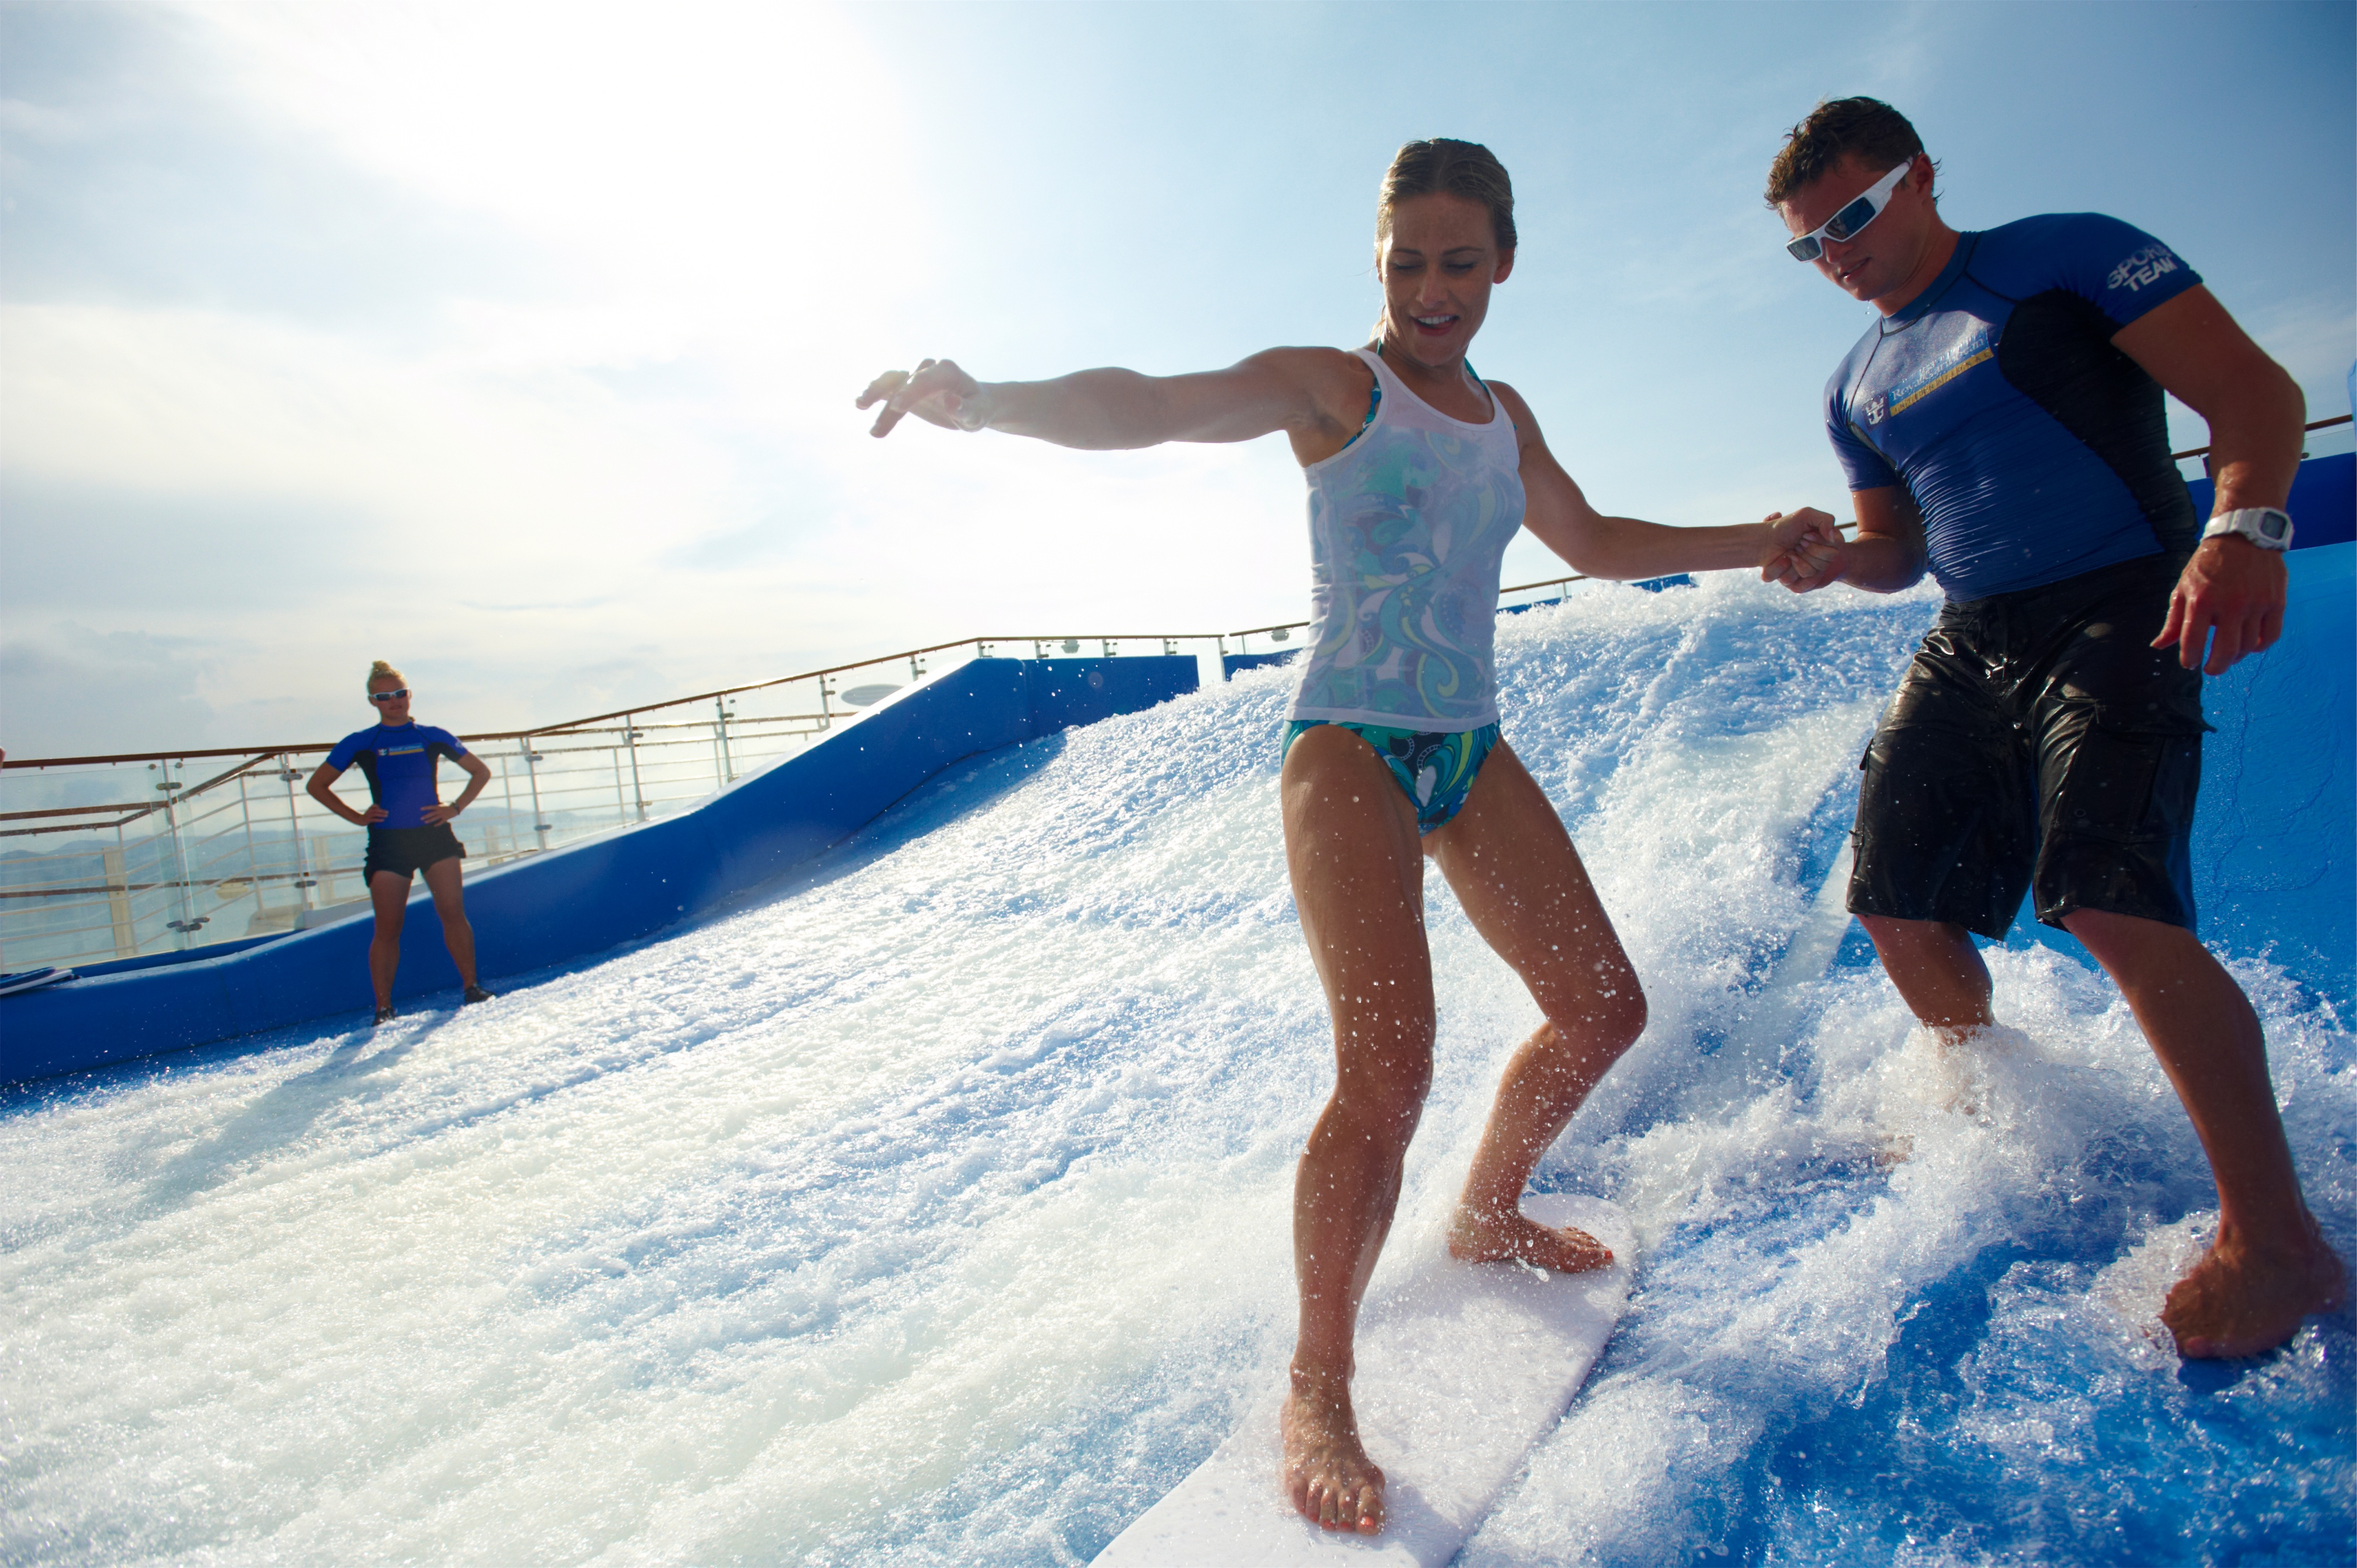 Royal Caribbean International Oasis of the Seas Exterior Flowrider DSC 4115.jpg